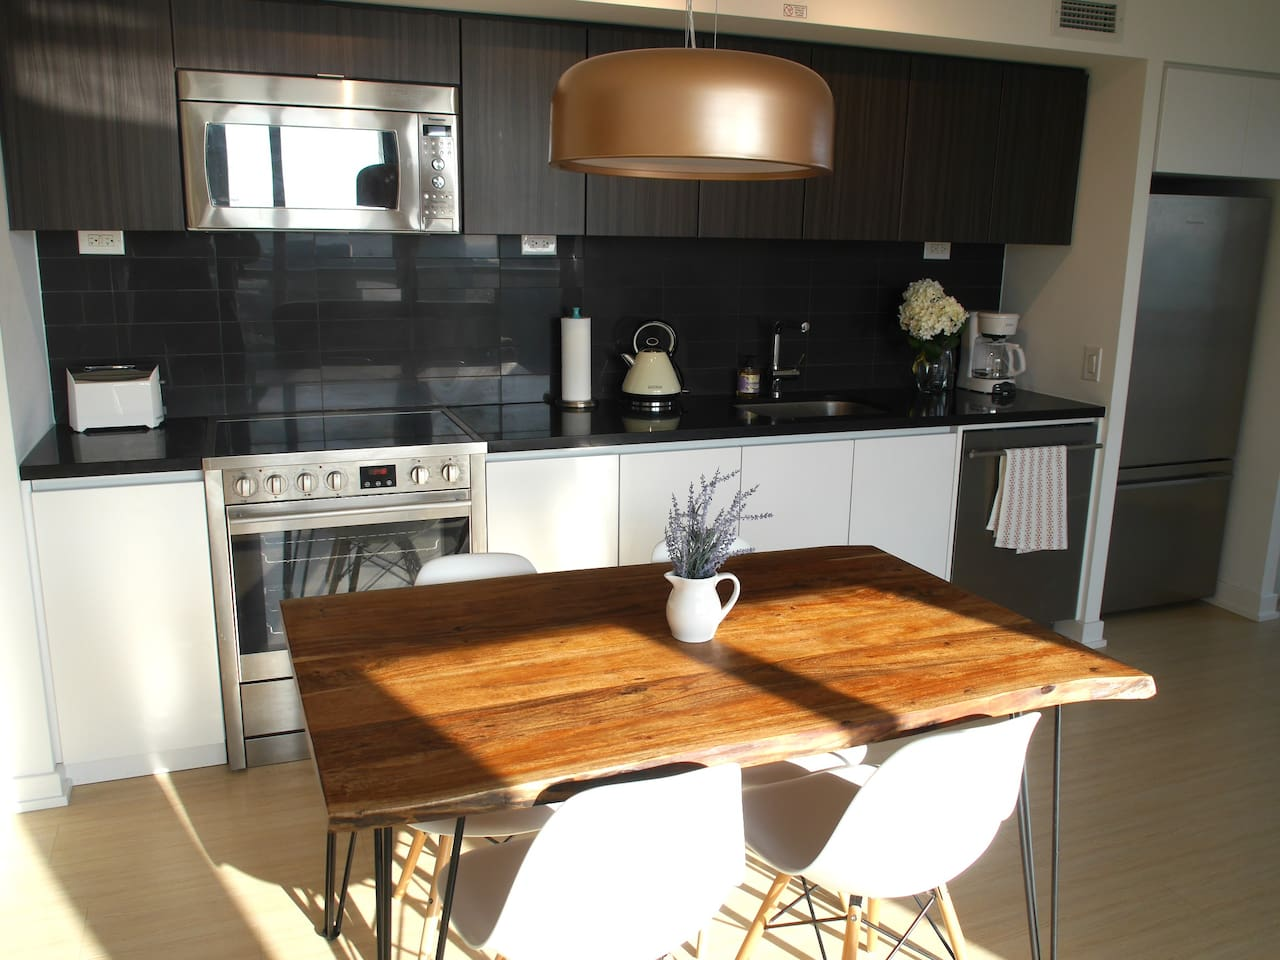 A beautifully decorated large kitchen with all the amenities